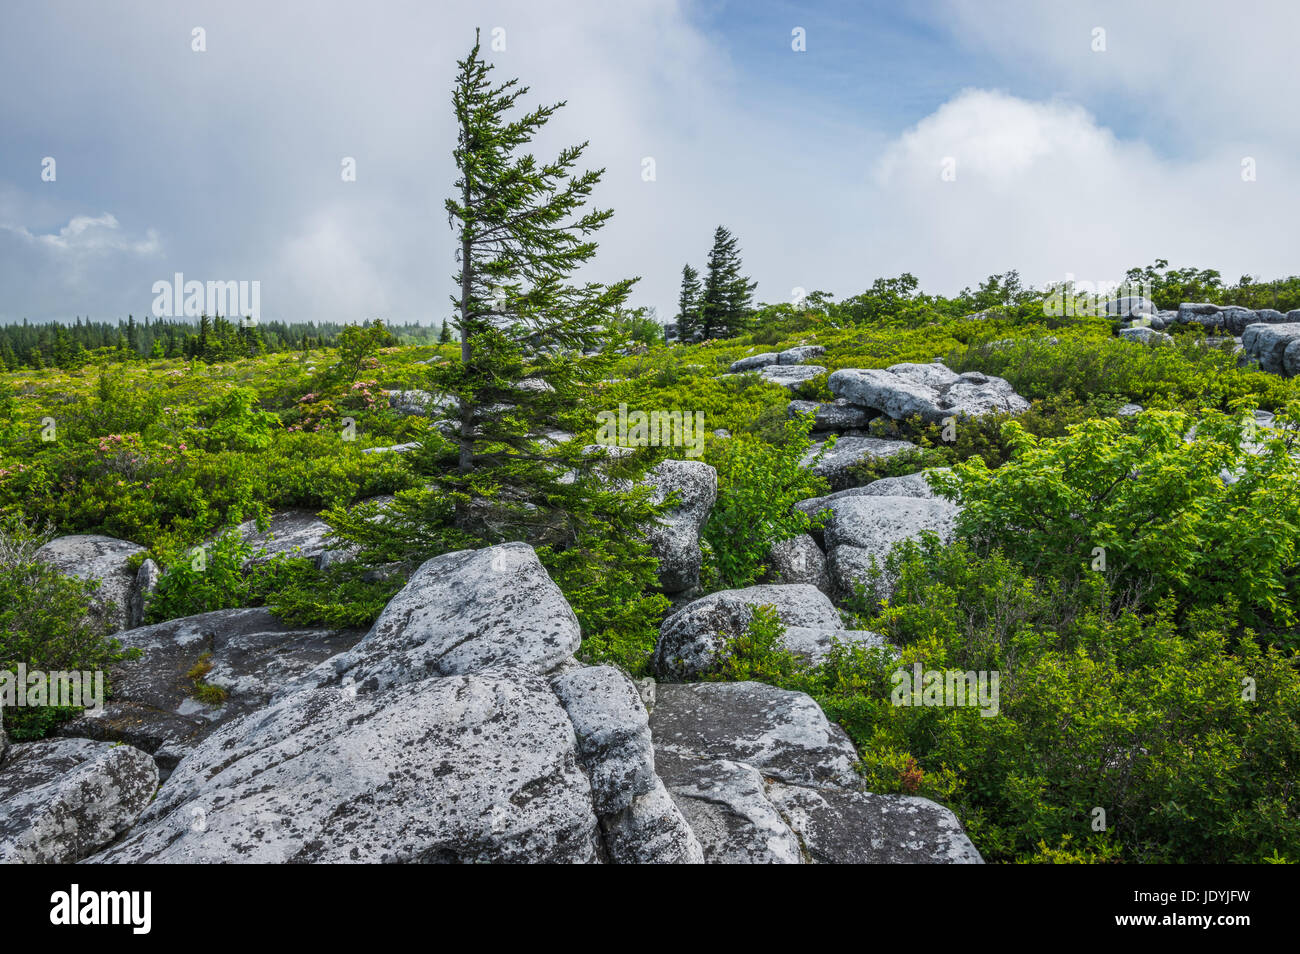 Flagged pine mark the distinctive rocky outcroppings of Bear Rocks in the Dolly Sods Wilderness Area of West Virginia, Stock Photo